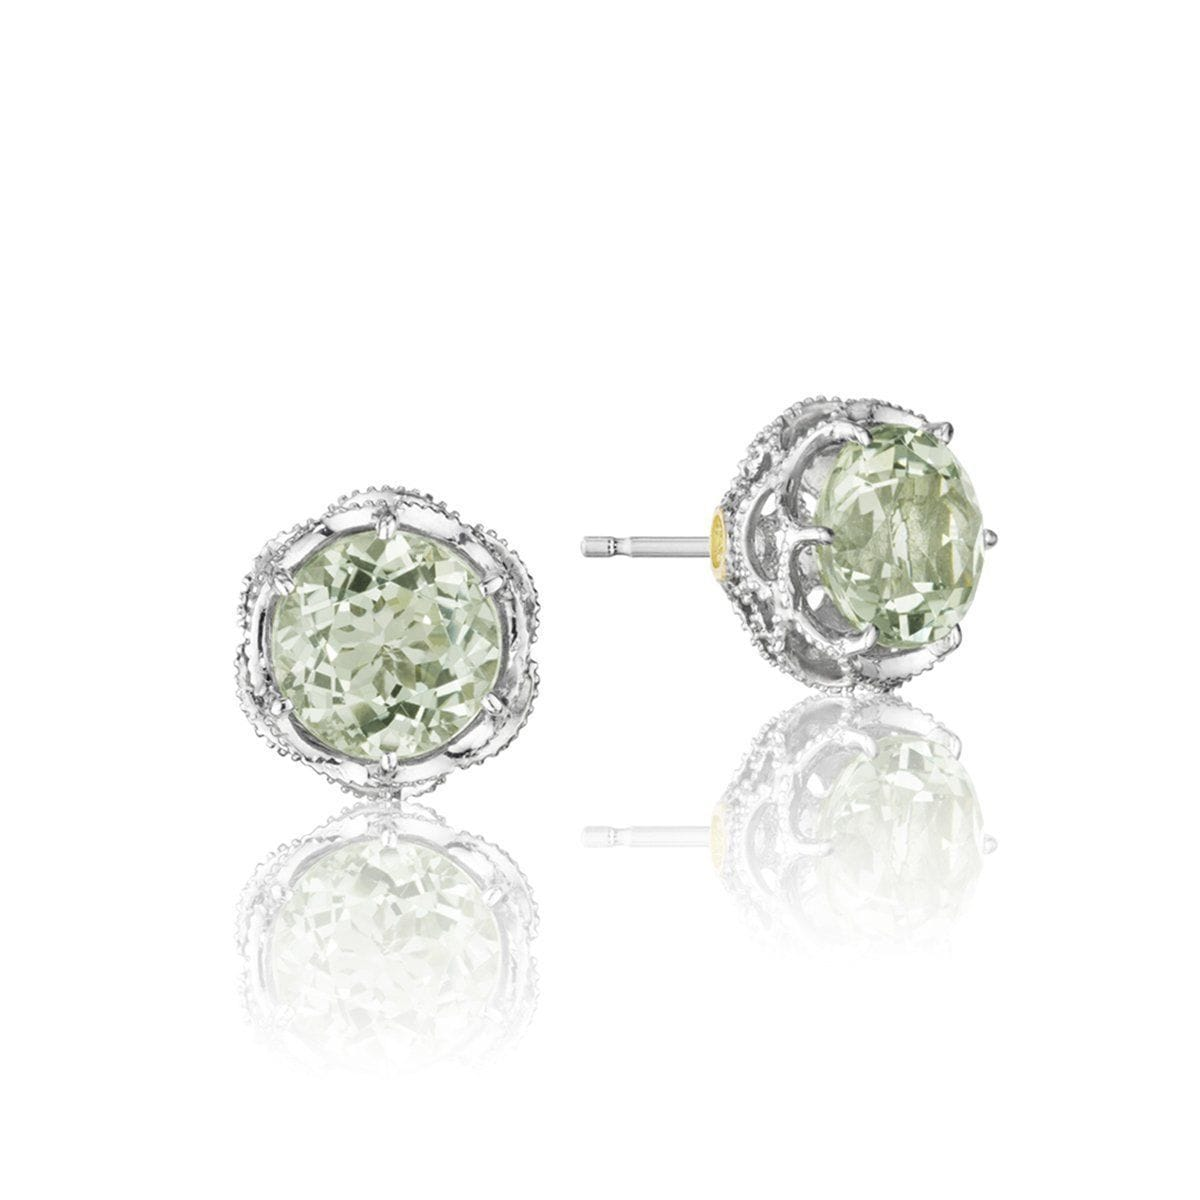 Silver Prasiolite Round Stud Earrings - SE10512-Tacori-Renee Taylor Gallery